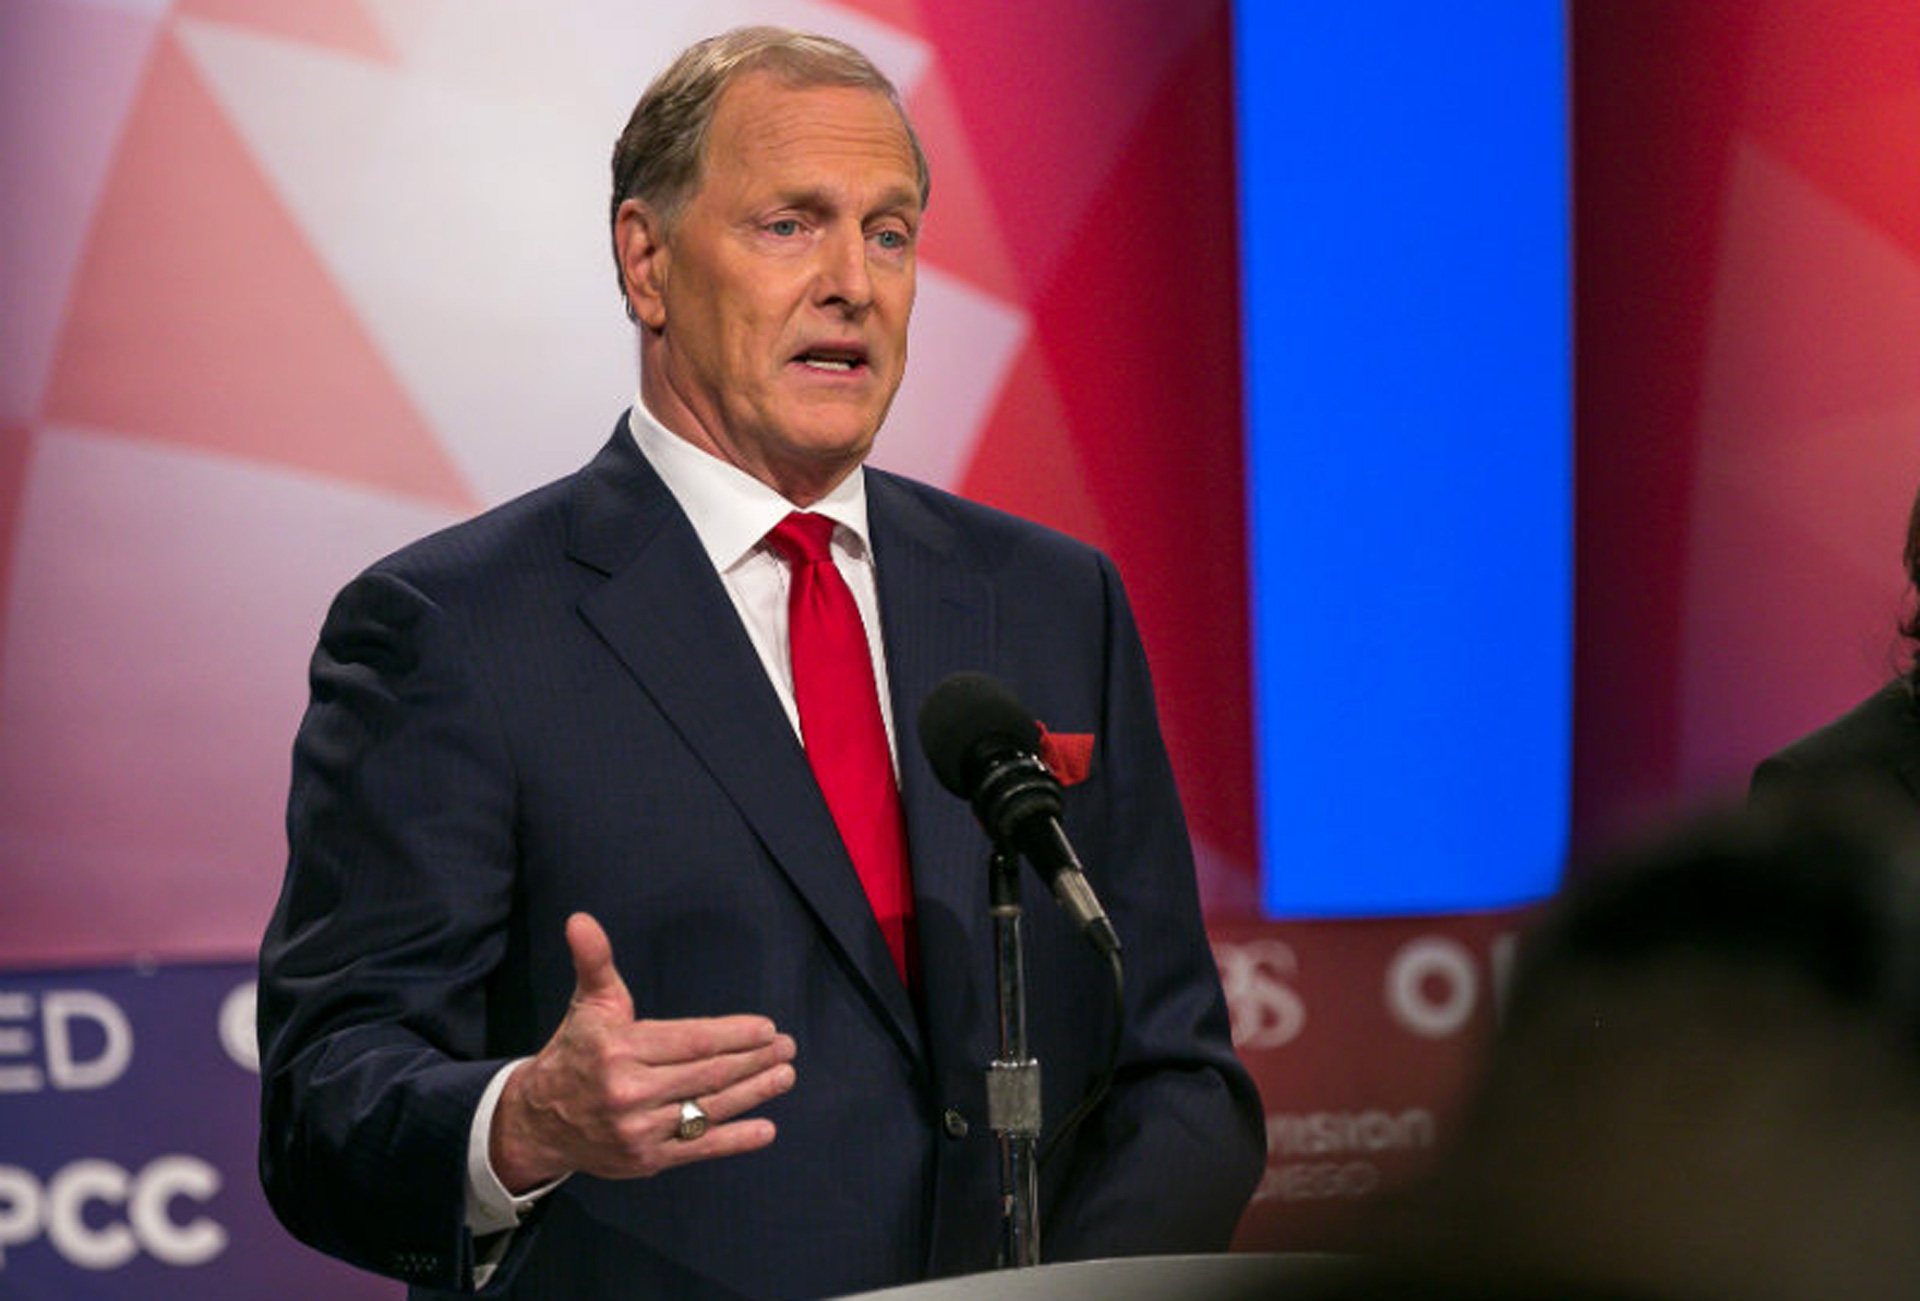 Republican U.S. Senate candidate Duf Sundheim makes a point during Tuesday's debate.